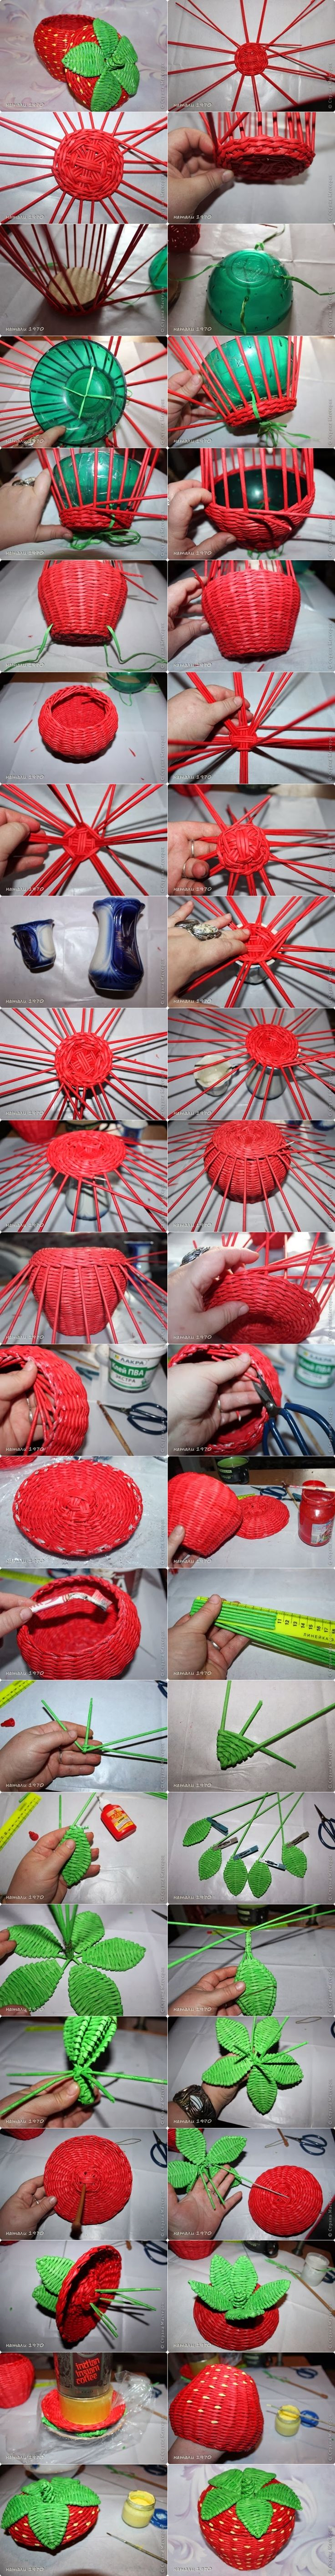 DIY Woven Strawberry Shaped Basket from Recycled Newspaper | www.FabArtDIY.com